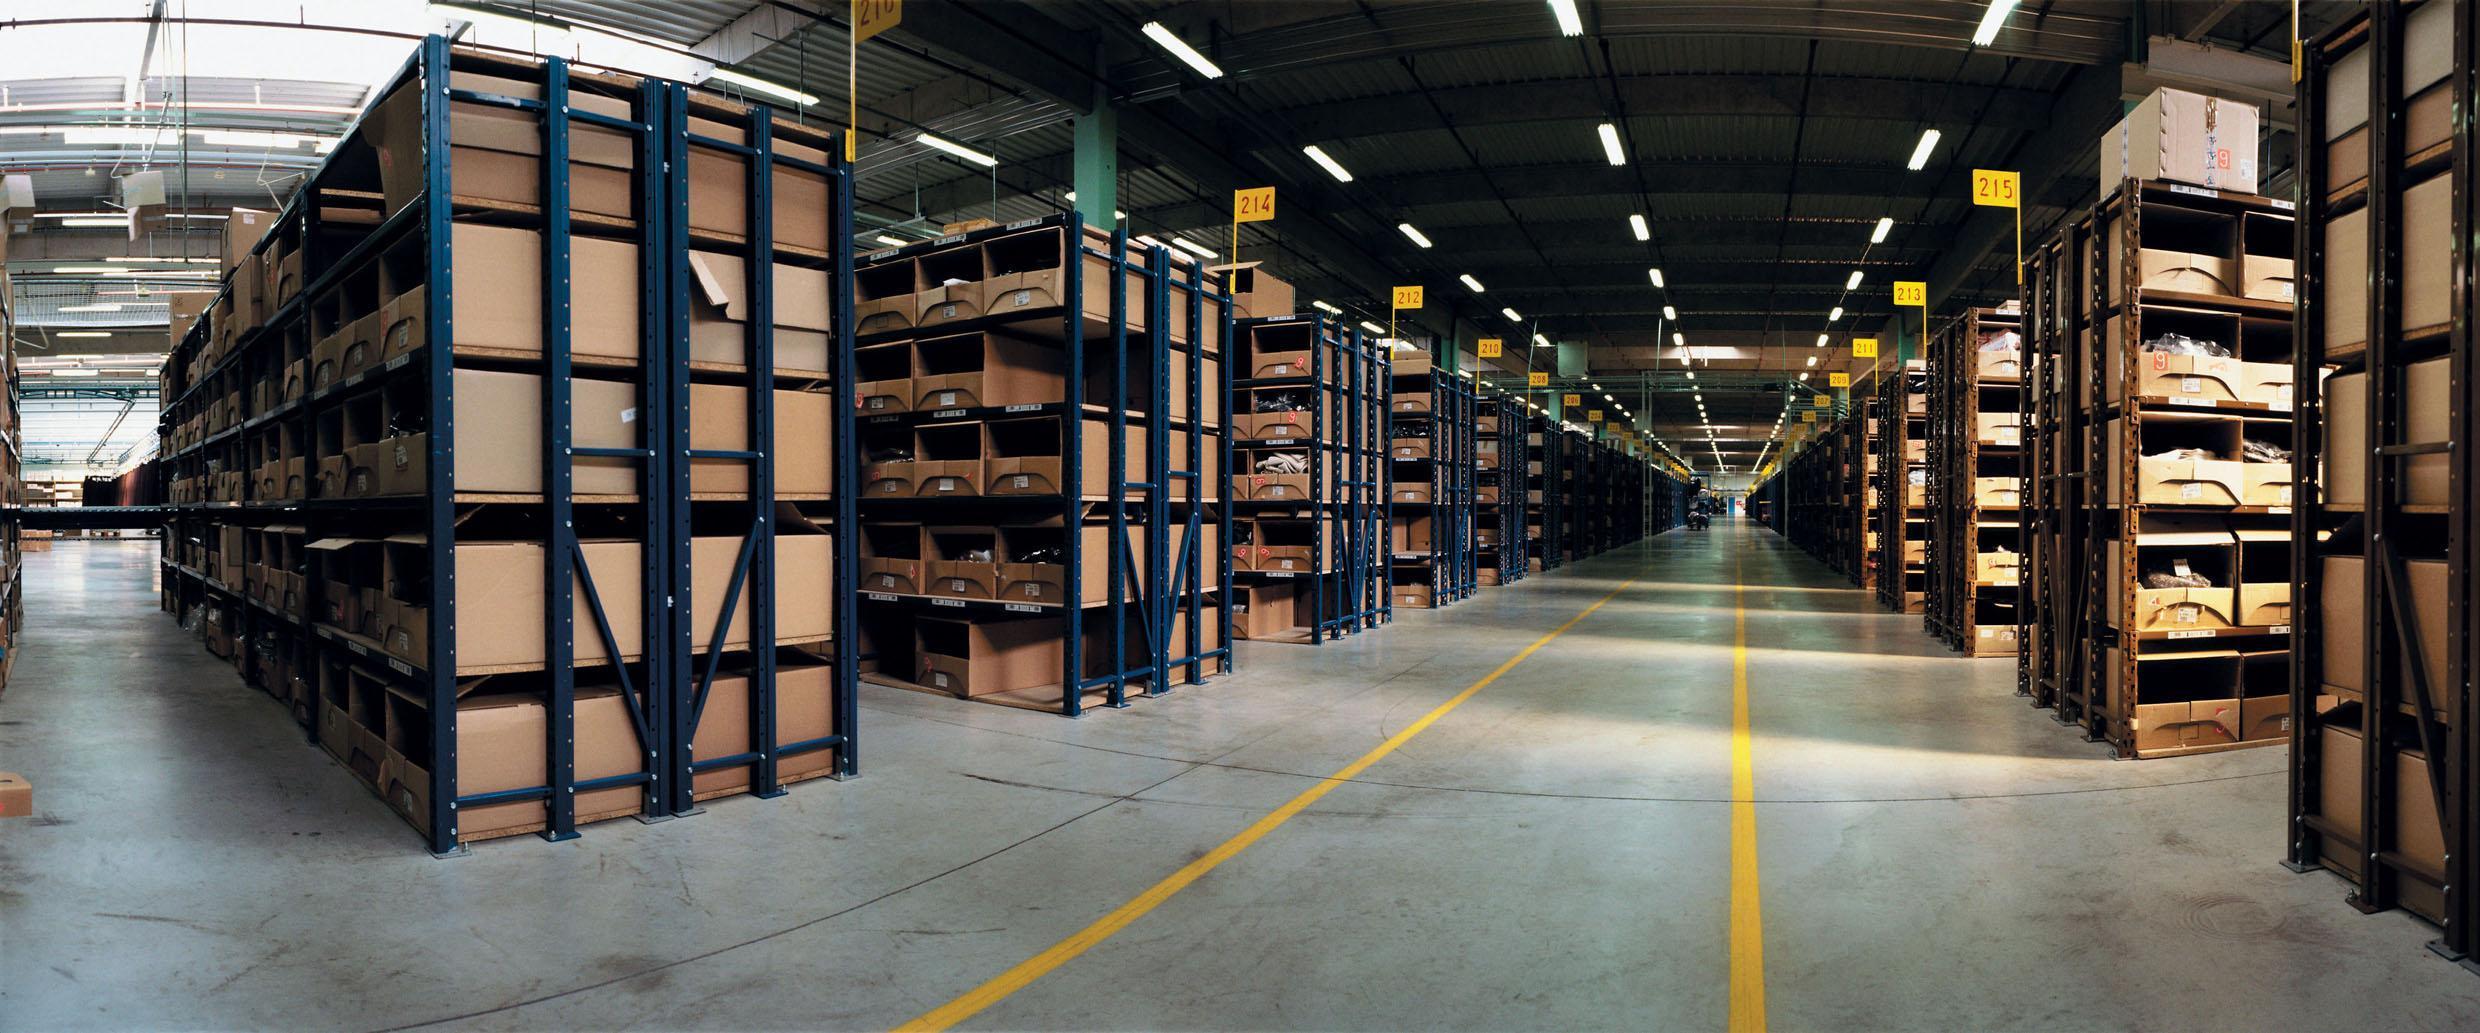 Warehouse main page